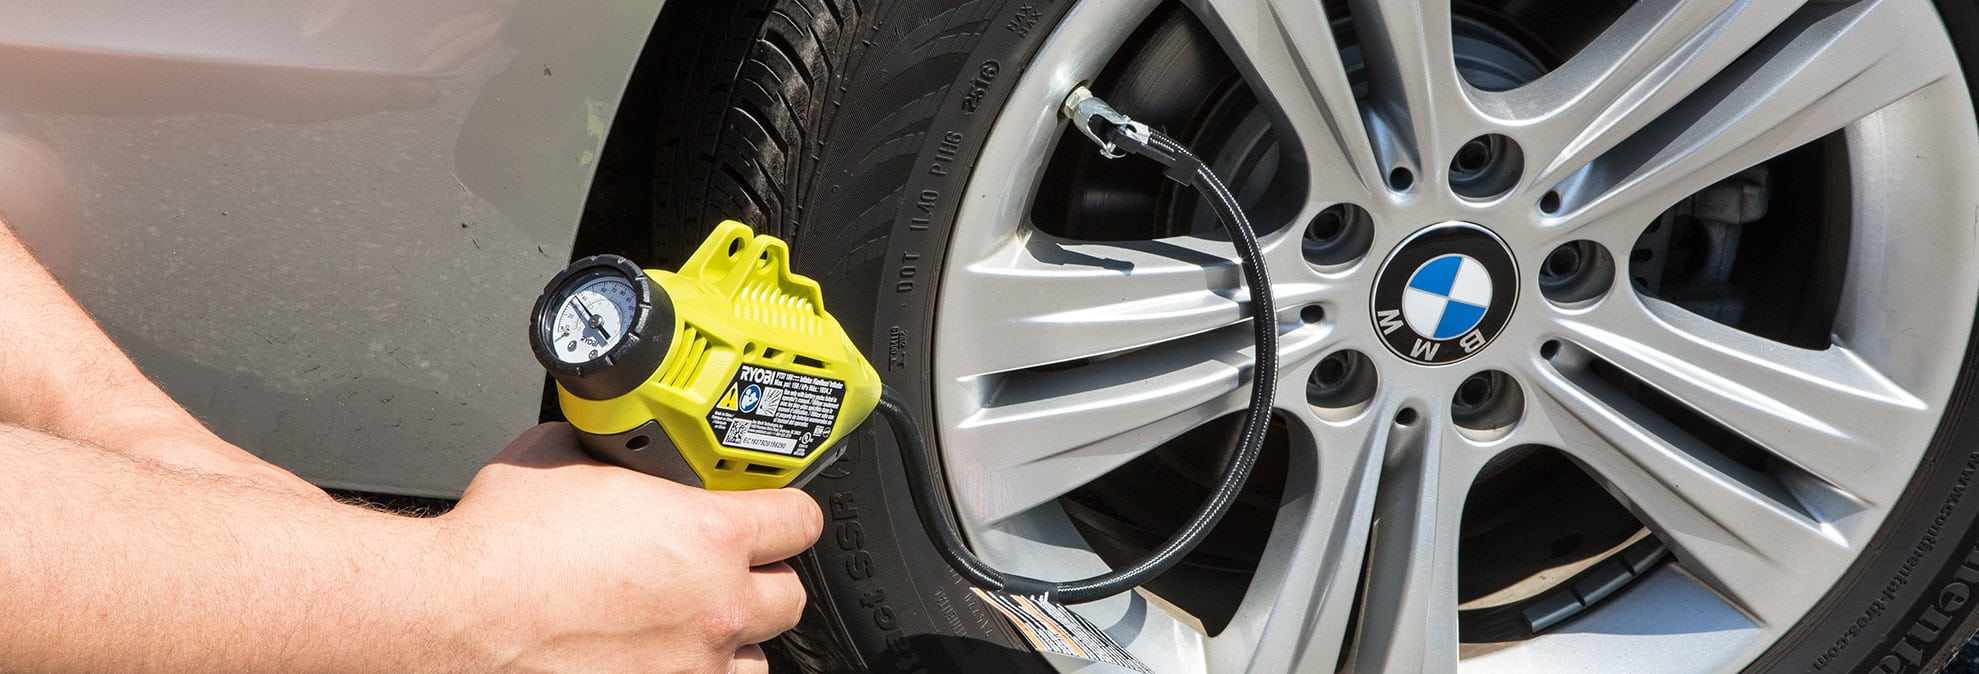 Cordless Tire Inflators Prove To Be An Easy Way To Get The Job Done